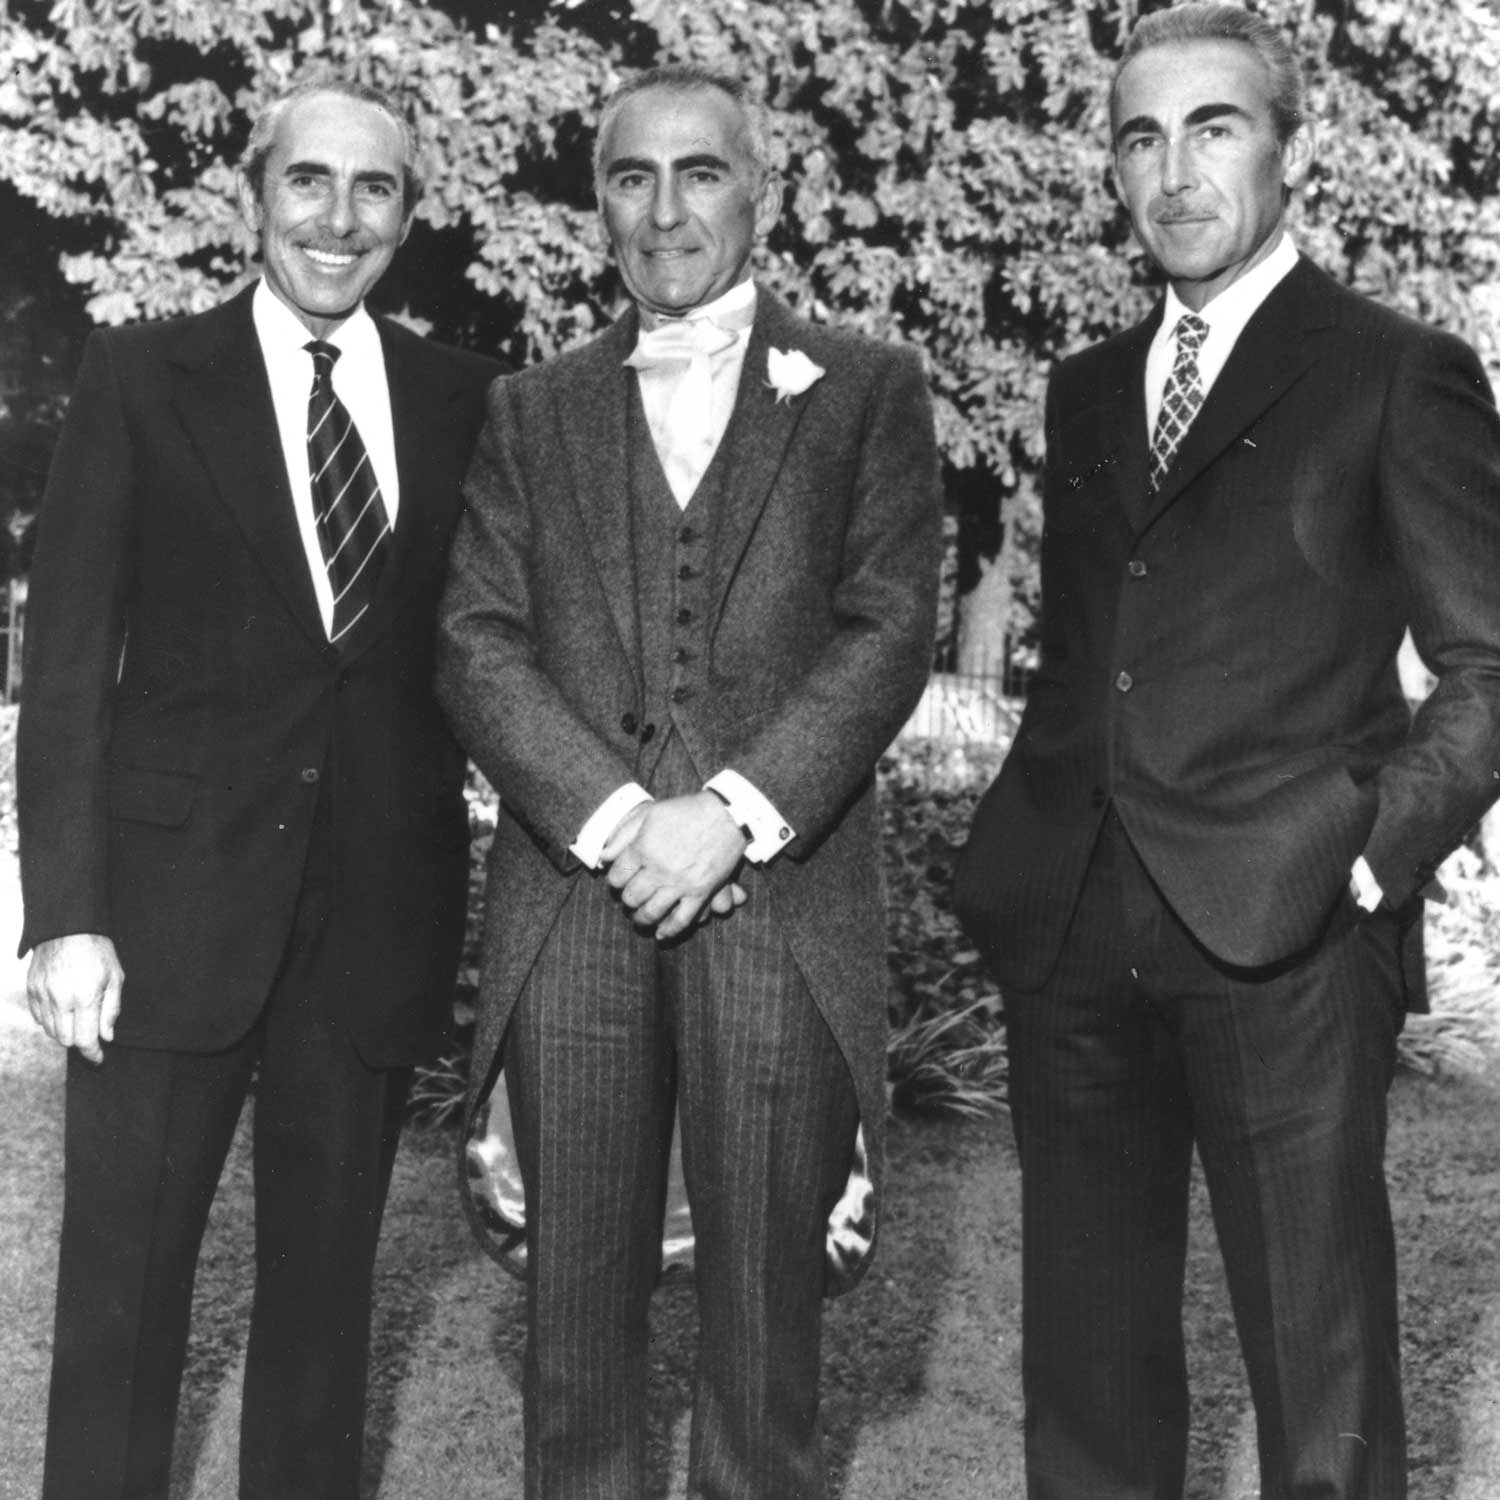 (L-R) Brothers Claude, Pierre and Jacques Arpels